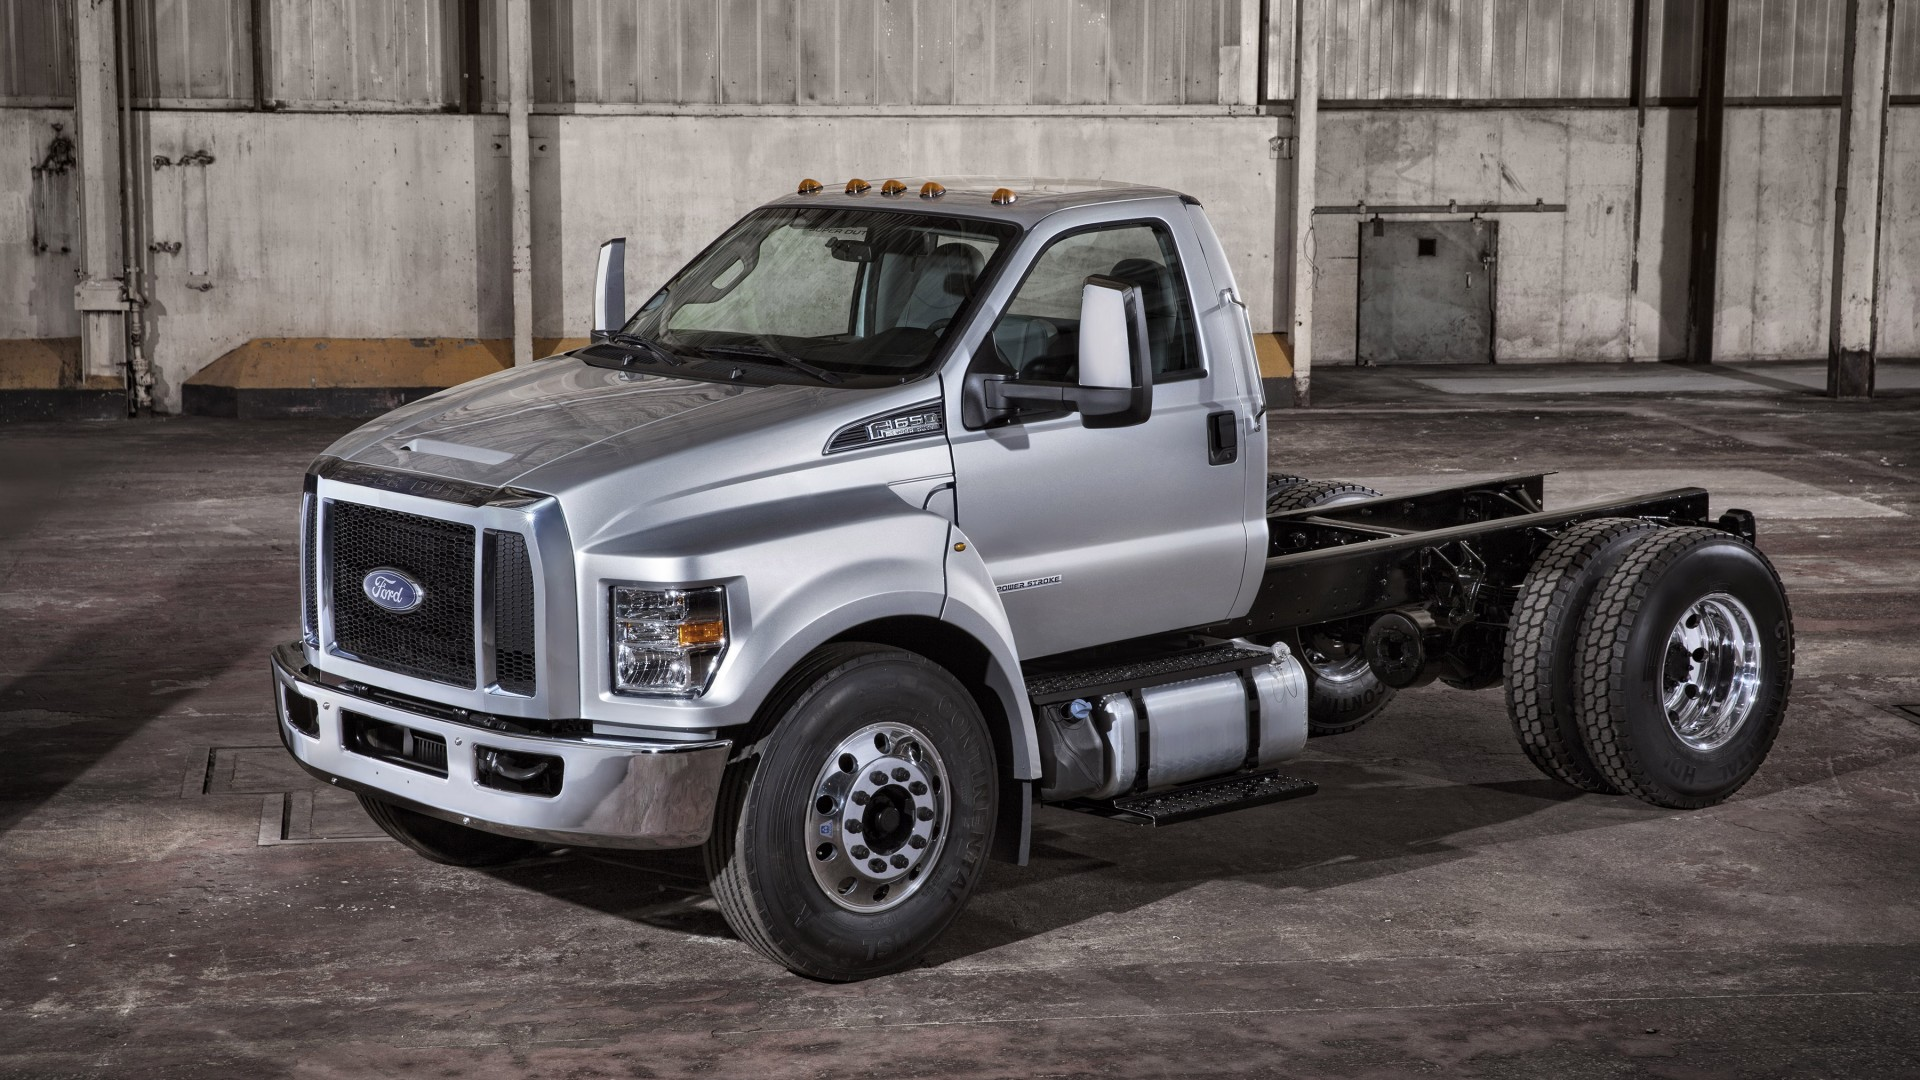 Ford F-650, Super Duty, truck, Econoline, ecosafe, F-750, Ford, F-53, F-59, commercial trucks (horizontal)